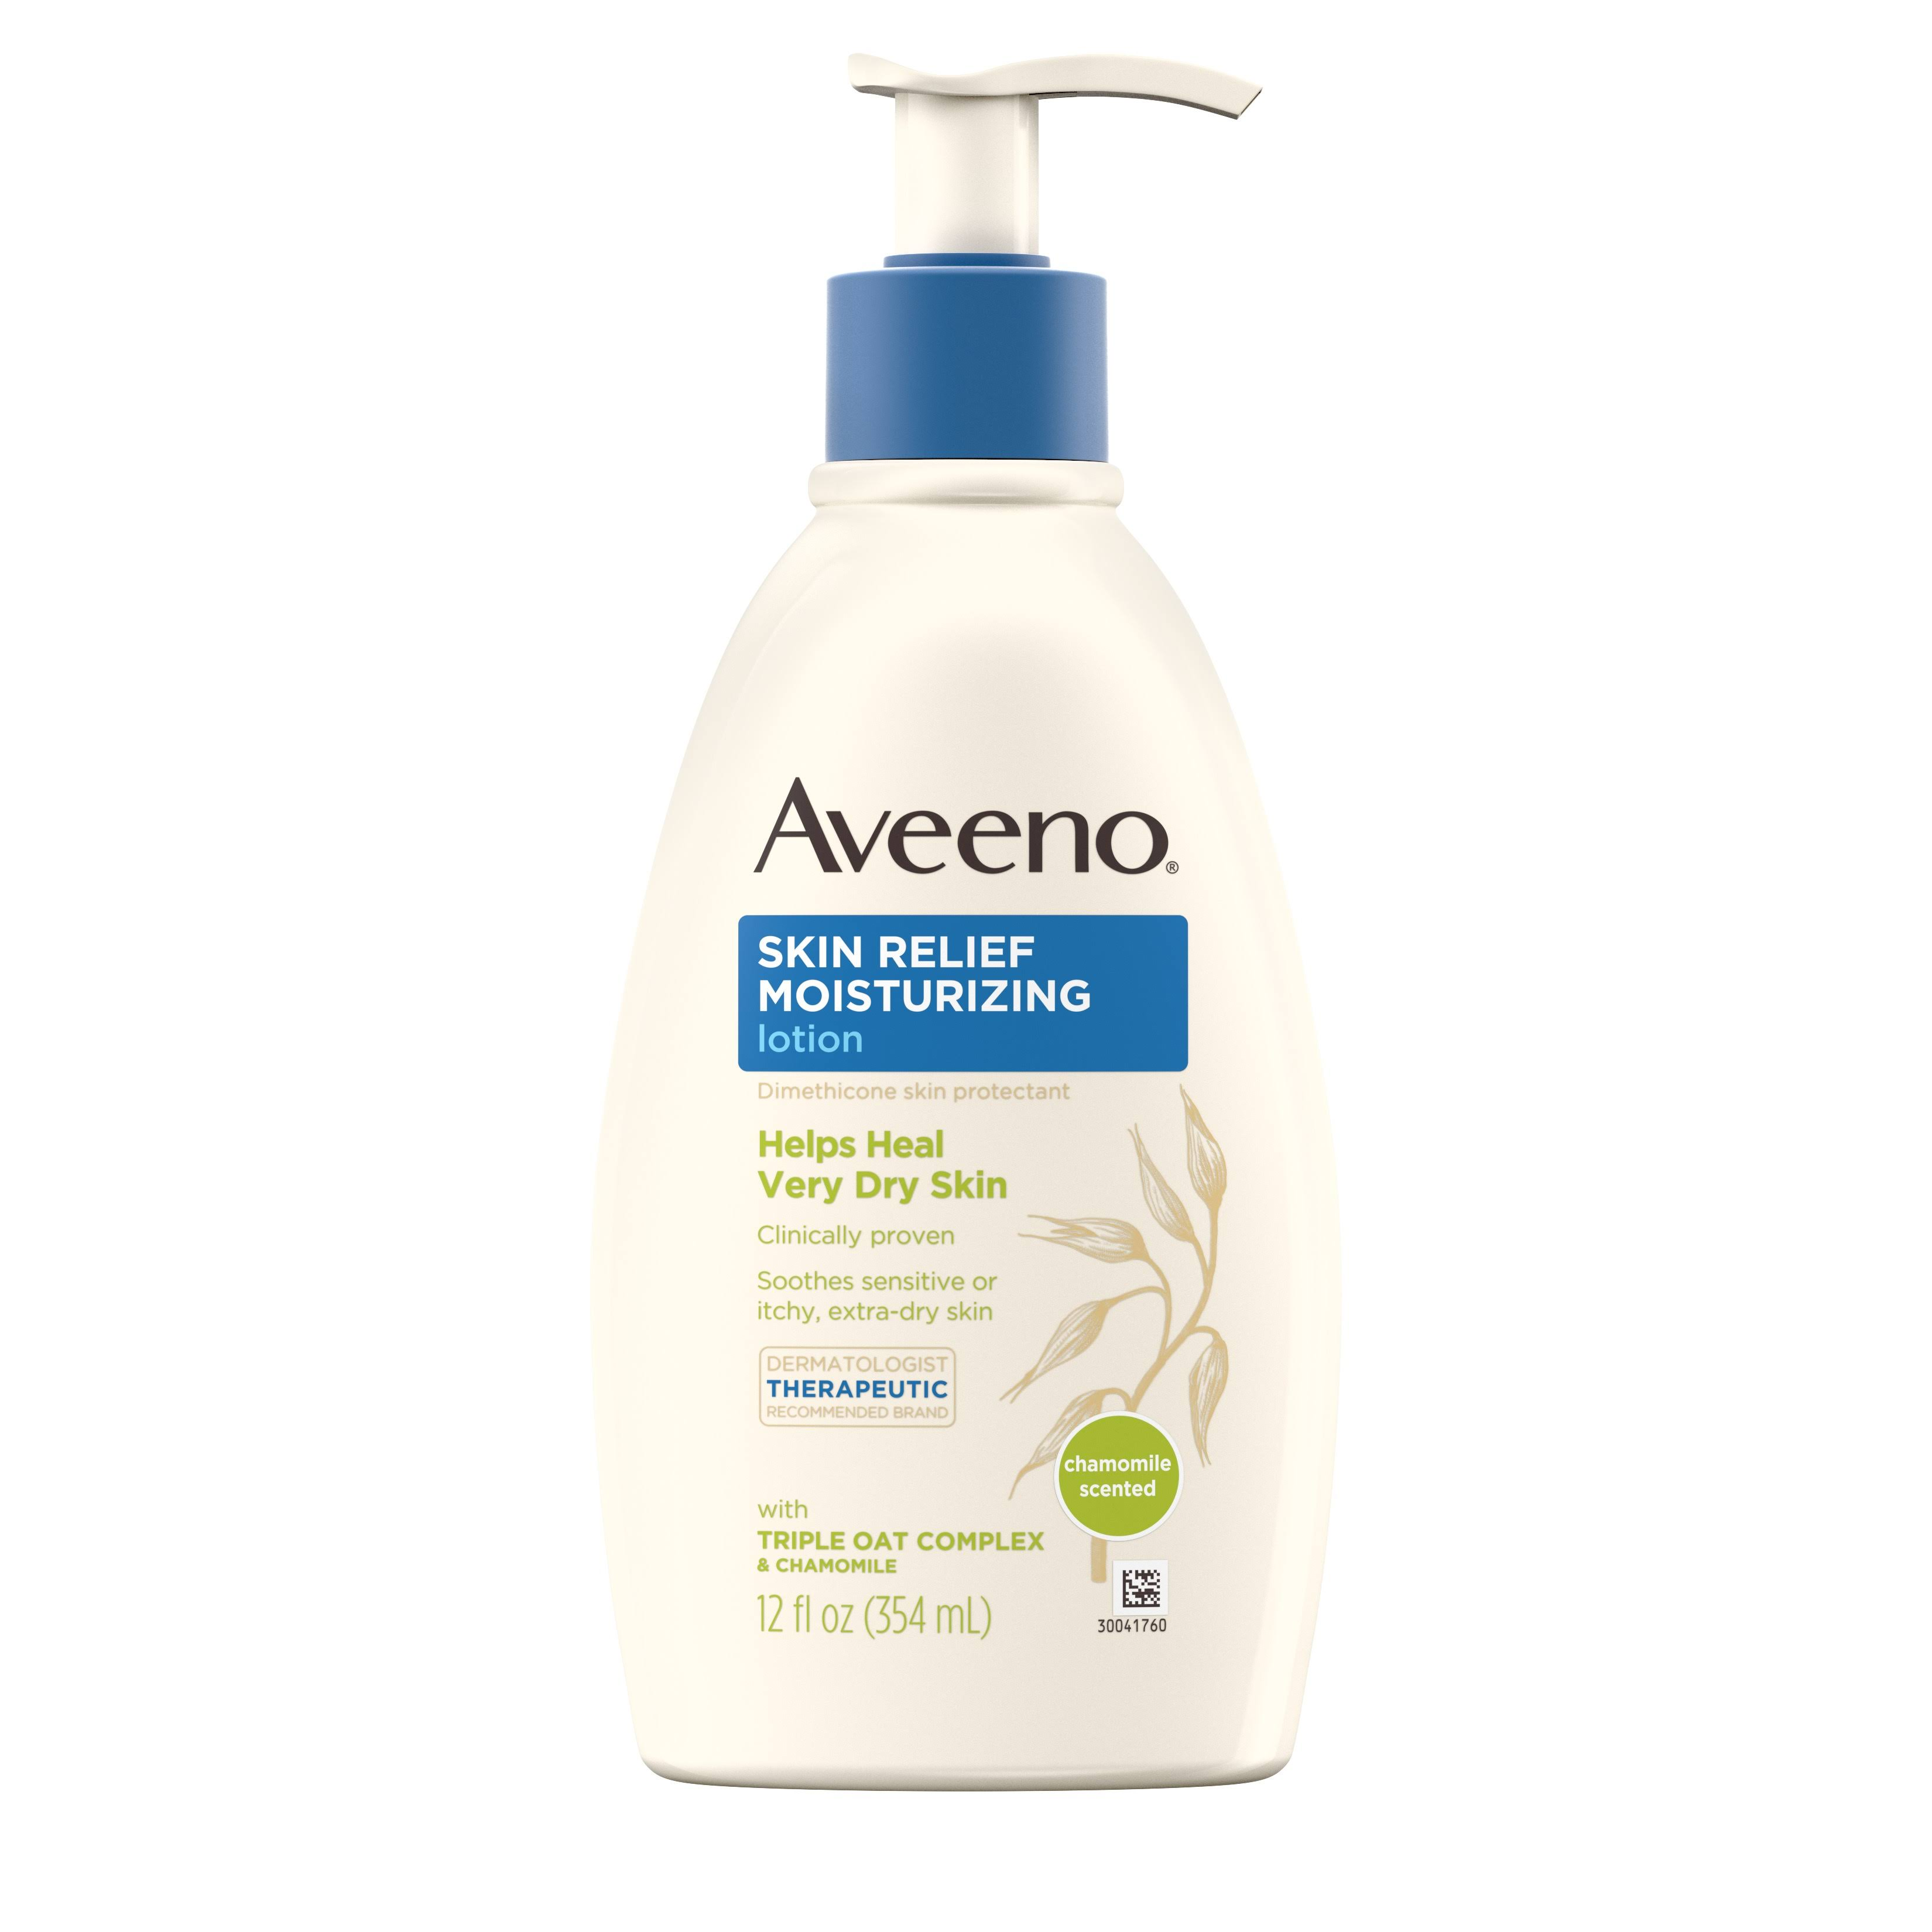 Aveeno Active Naturals Skin Relief Soothing Oat & Chamomile Gentle Scent Lotion - 12 oz